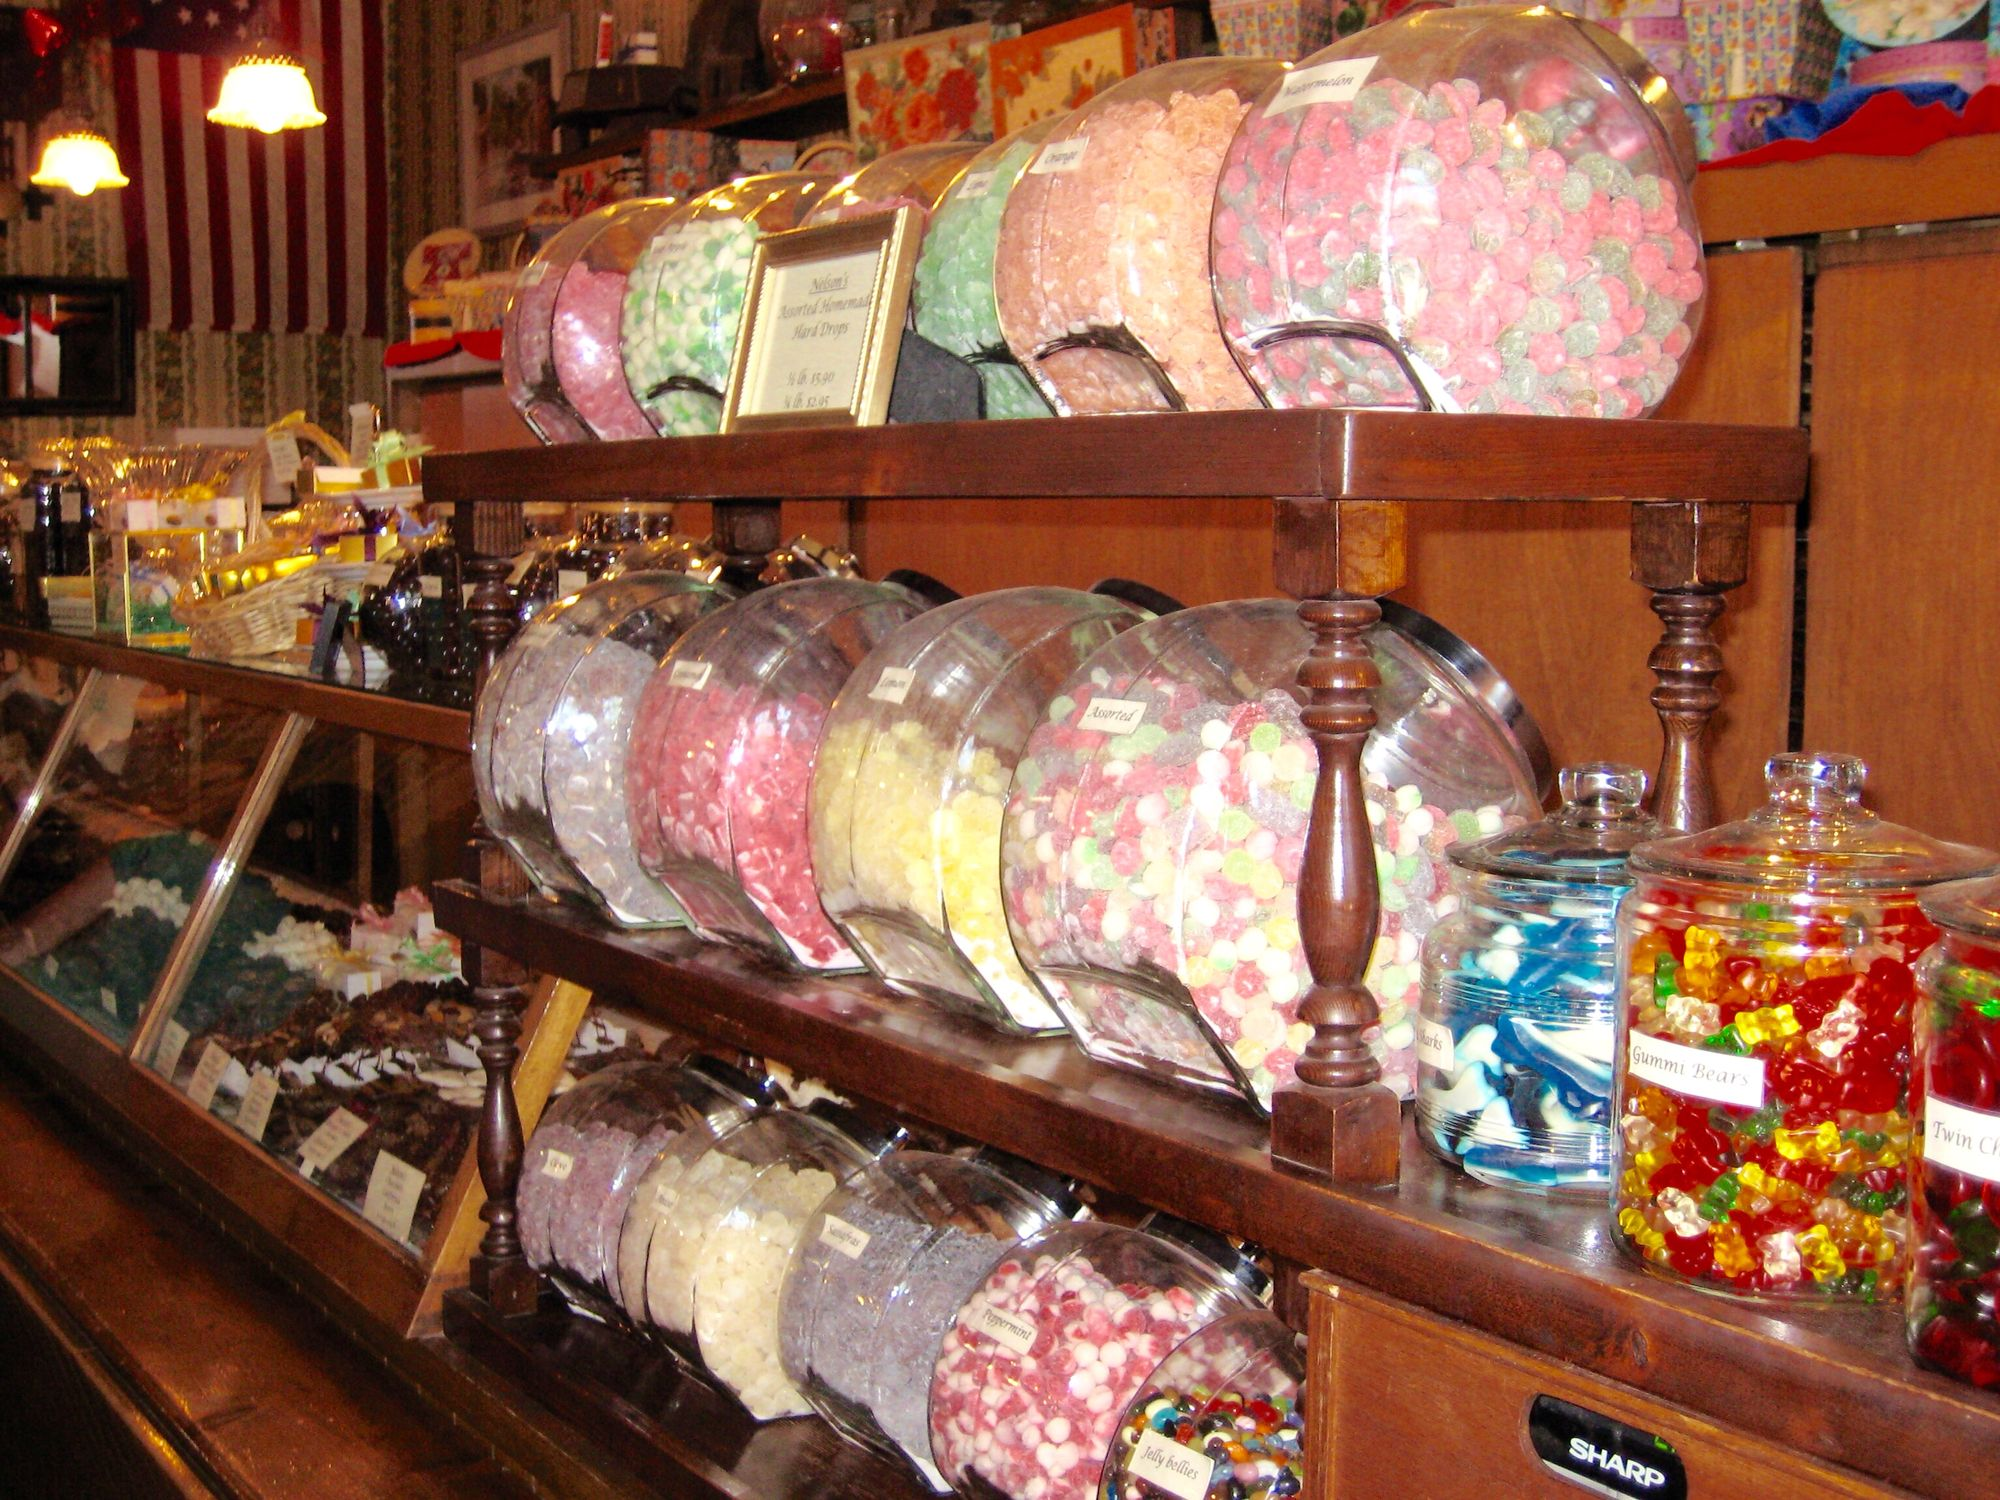 Nelson S Columbia Candy Kitchen In Columbia State Historic Park California Excellent Handmade Candies Handmade Candy Candy Food